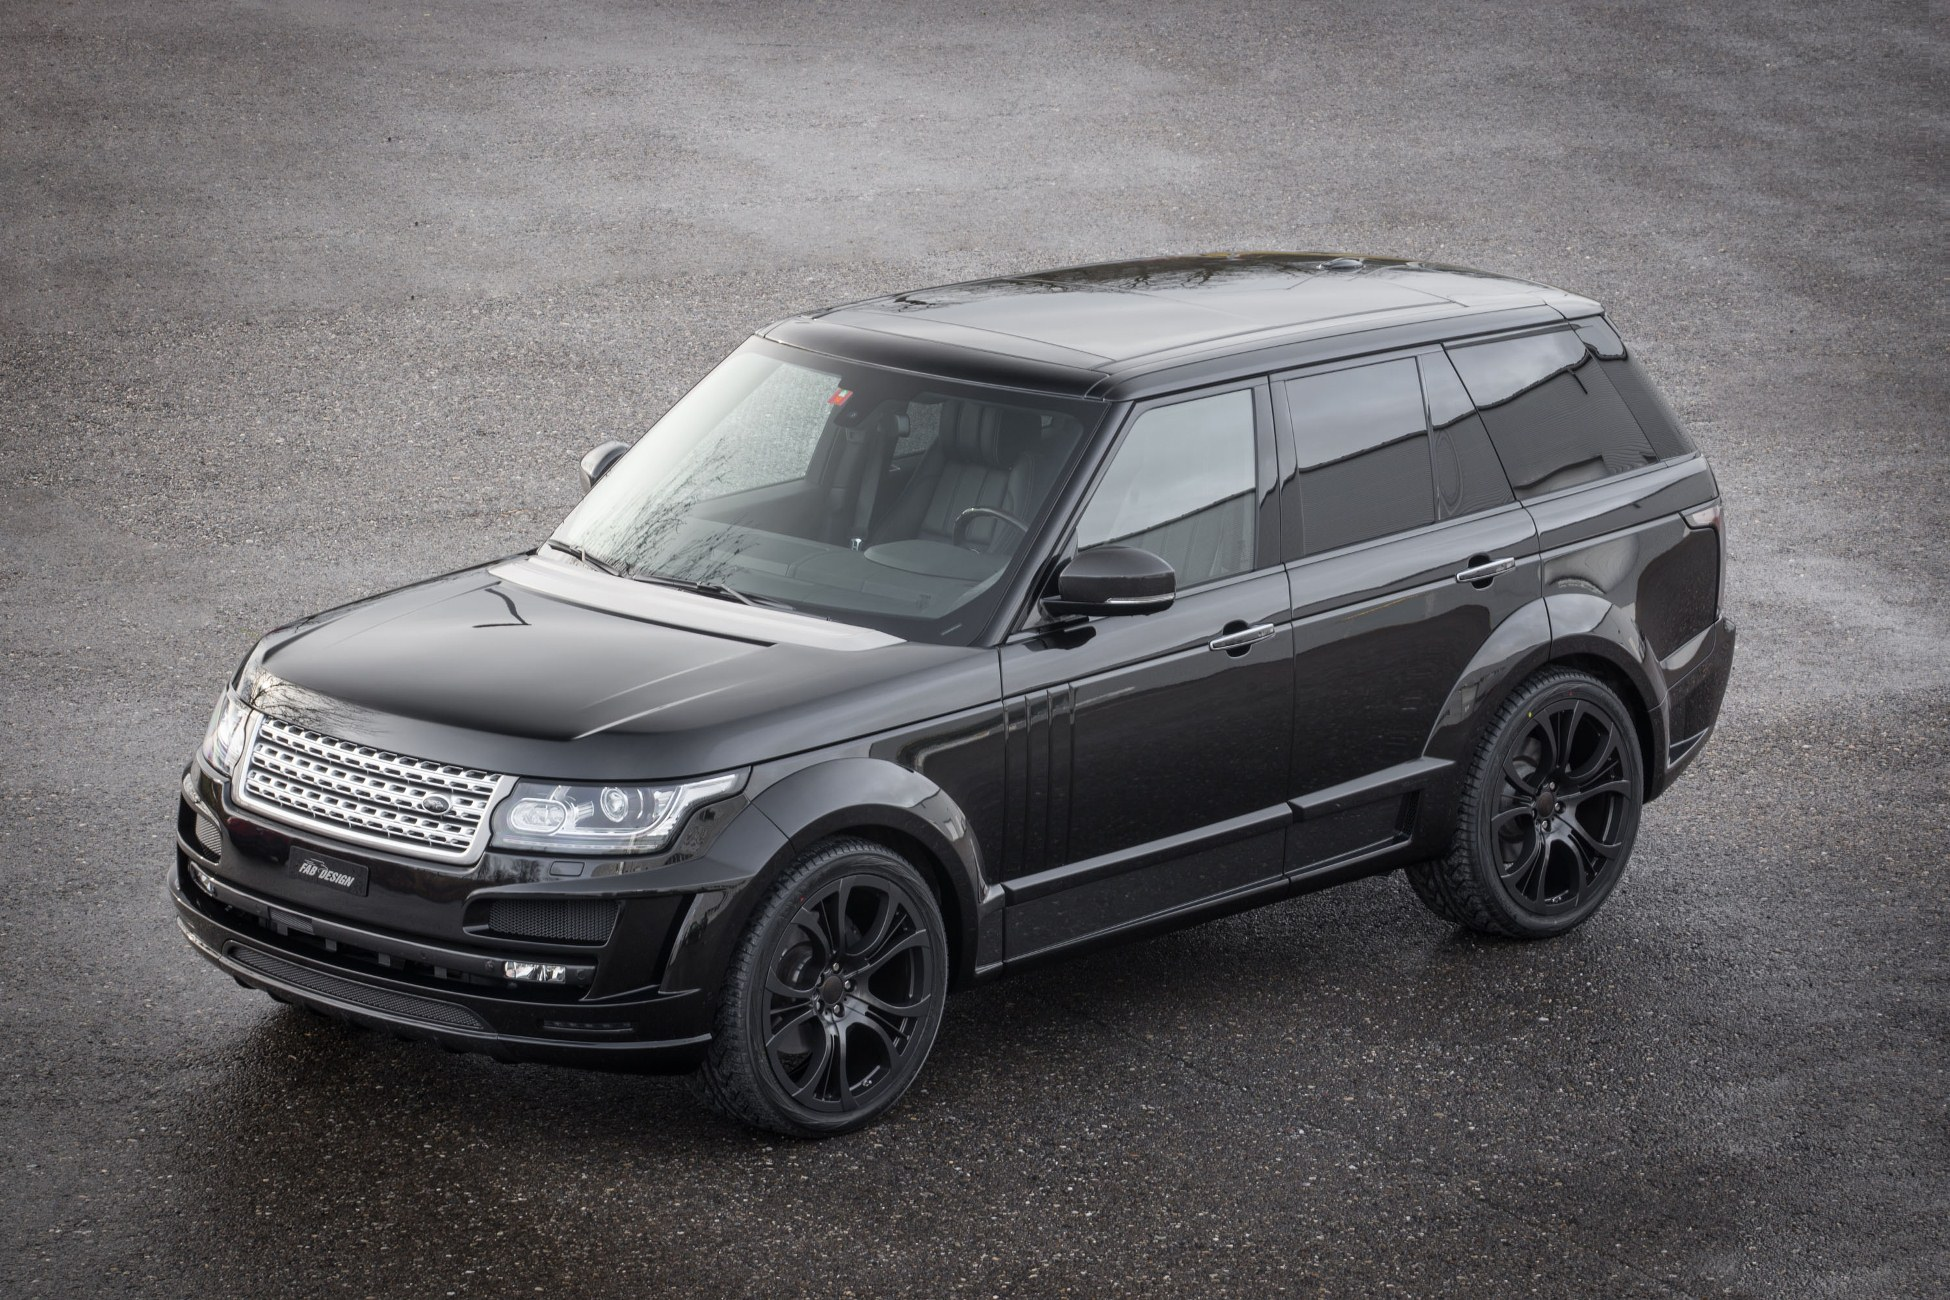 FAB Design Noreia auf Basis des Range Rover Vogue